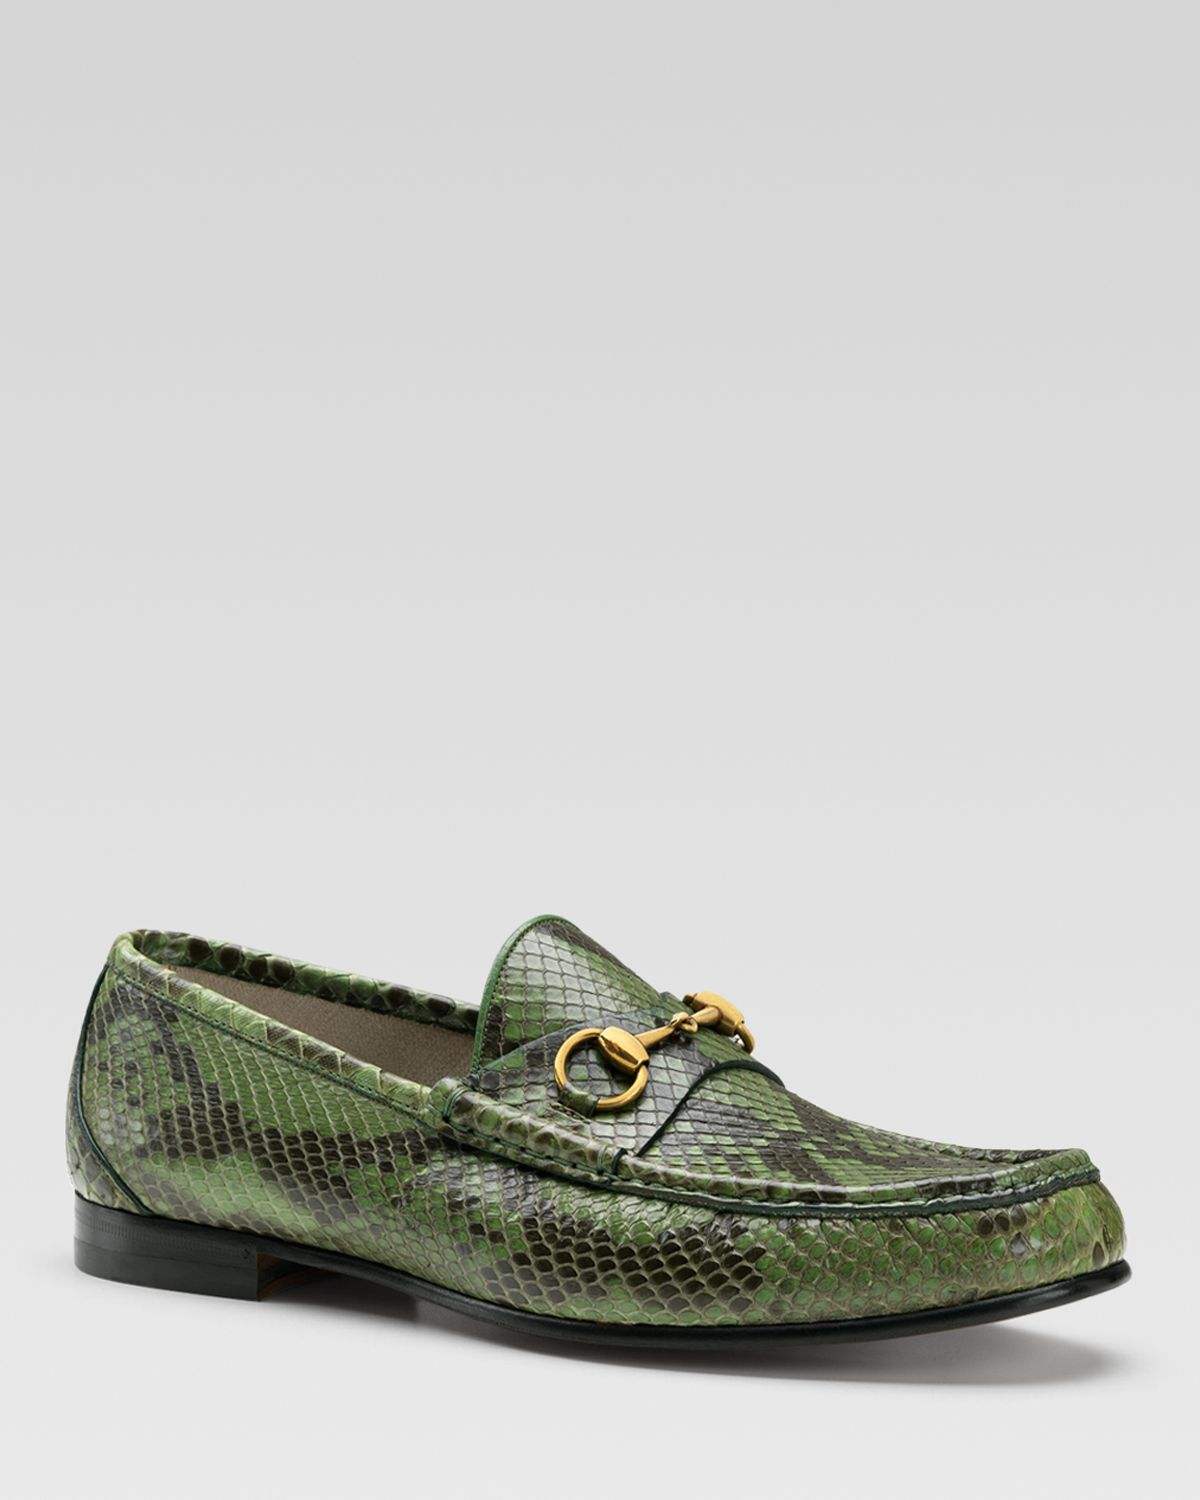 46d0424b1 Gucci Python Horsebit Loafers in Green for Men - Lyst